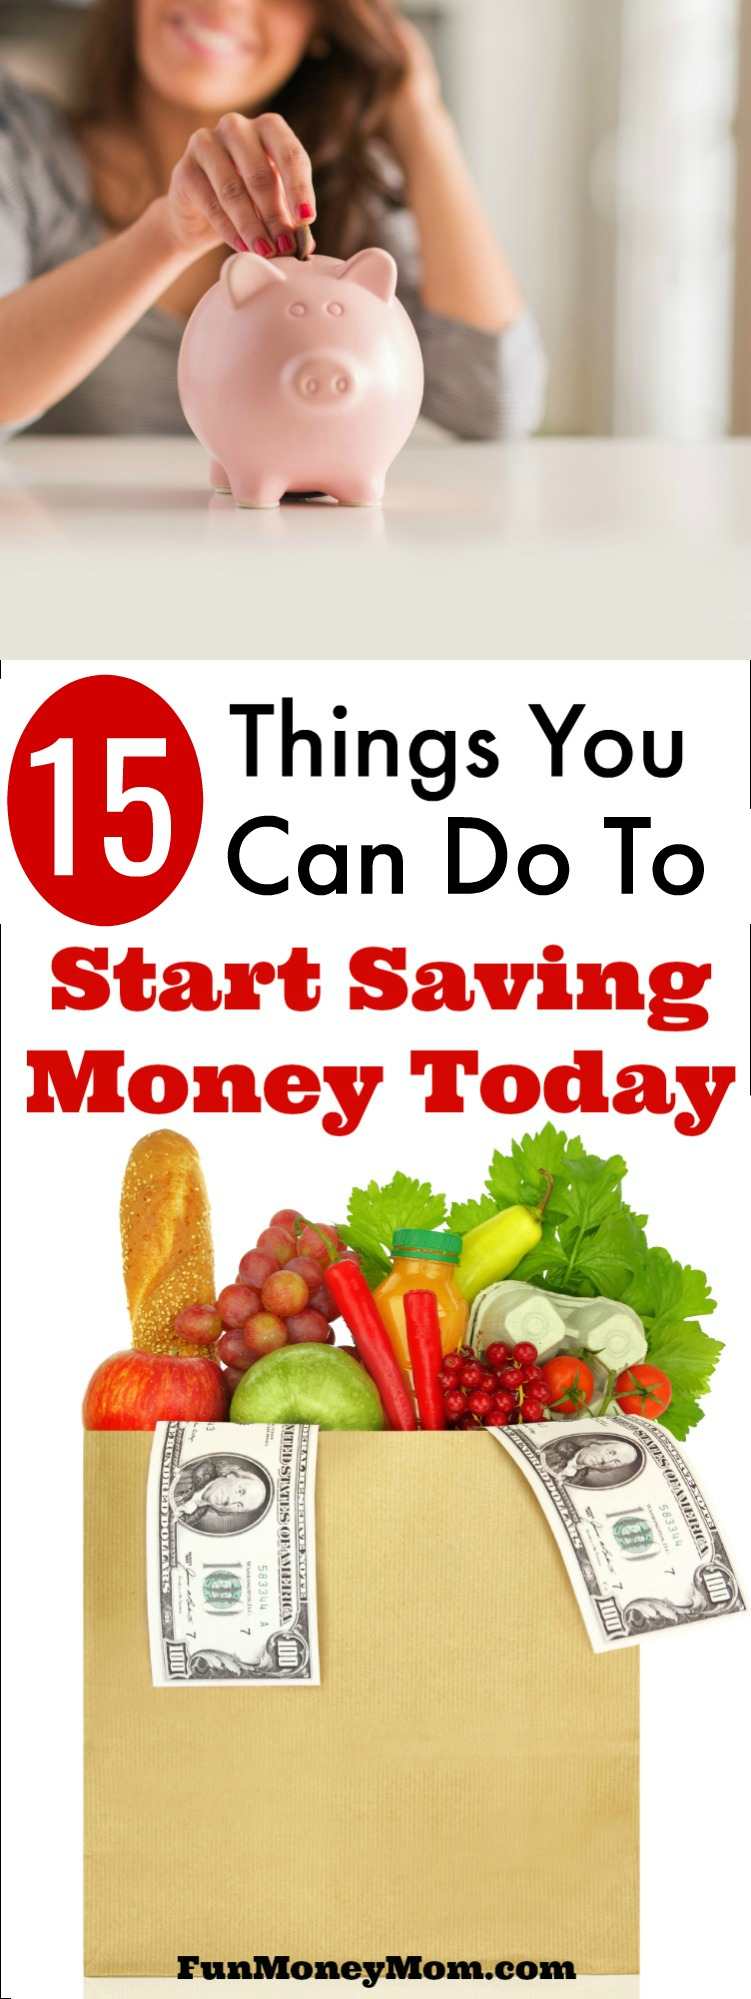 Need to tighten your budget? These 15 frugal living tips can help you start saving money today!